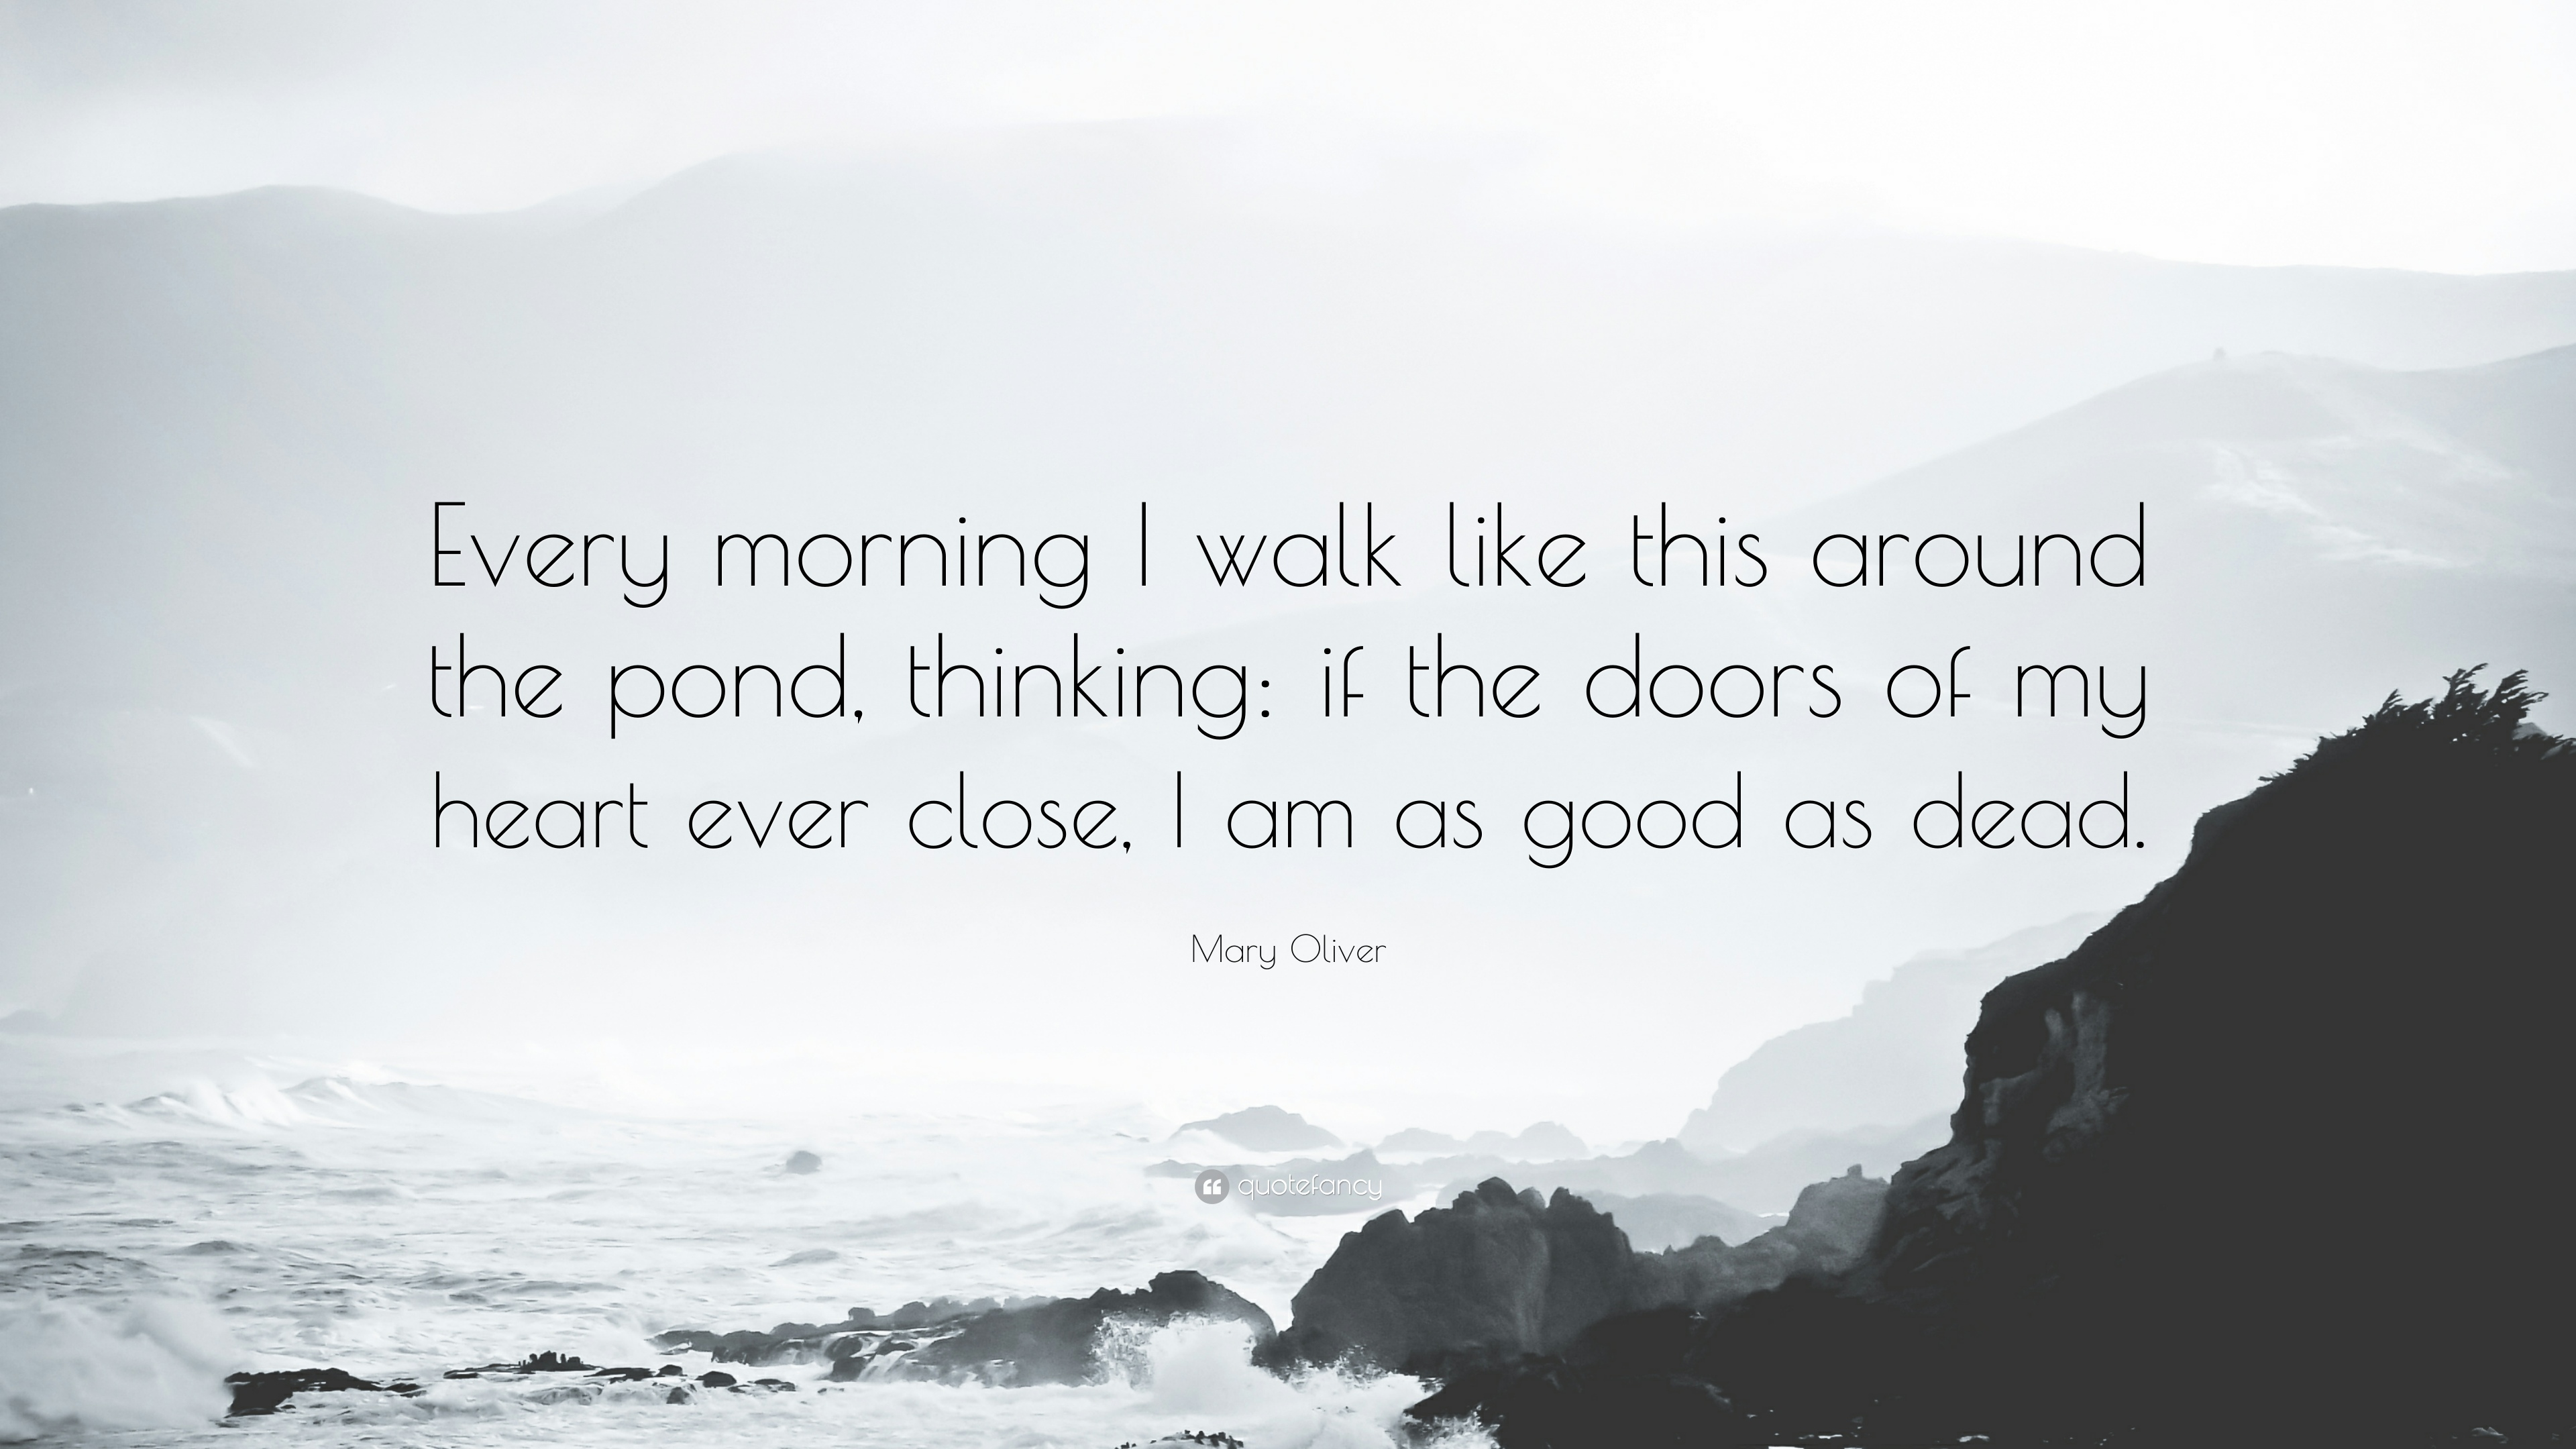 Mary Oliver Quote \u201cEvery morning I walk like this around the pond thinking & Mary Oliver Quote: \u201cEvery morning I walk like this around the pond ...